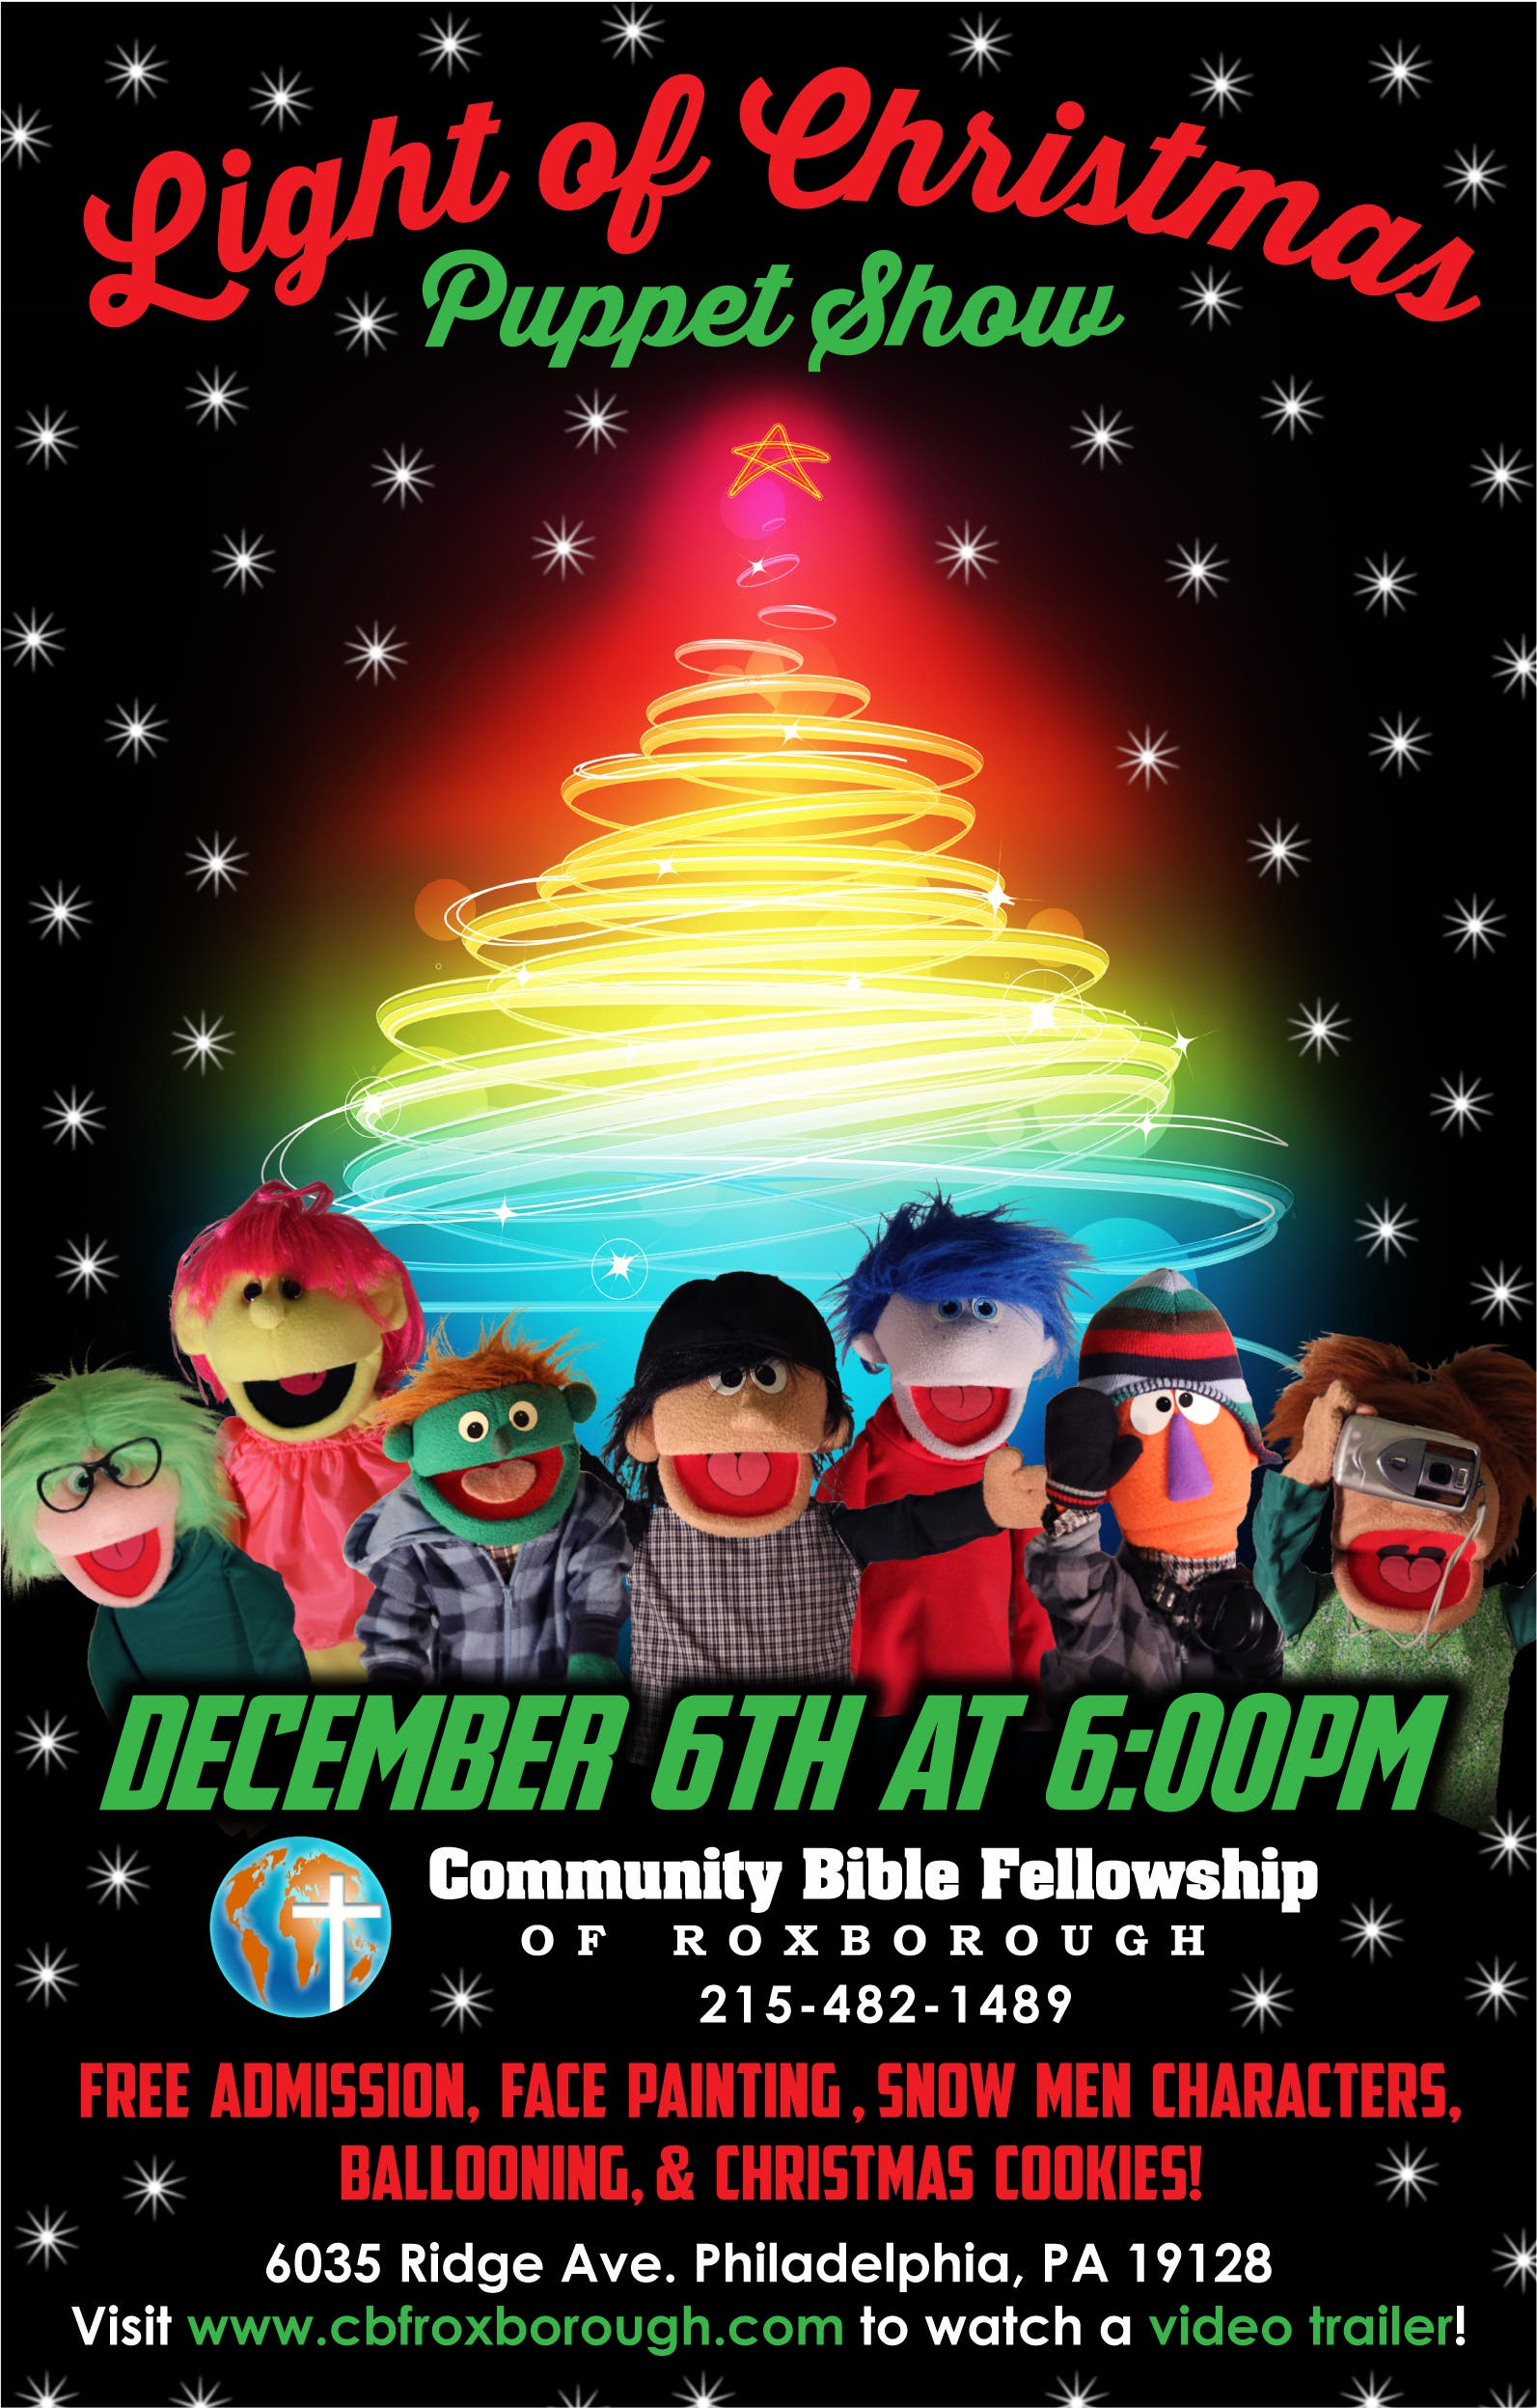 Light Of Christmas.Light Of Christmas Puppet Show To Be Held Saturday